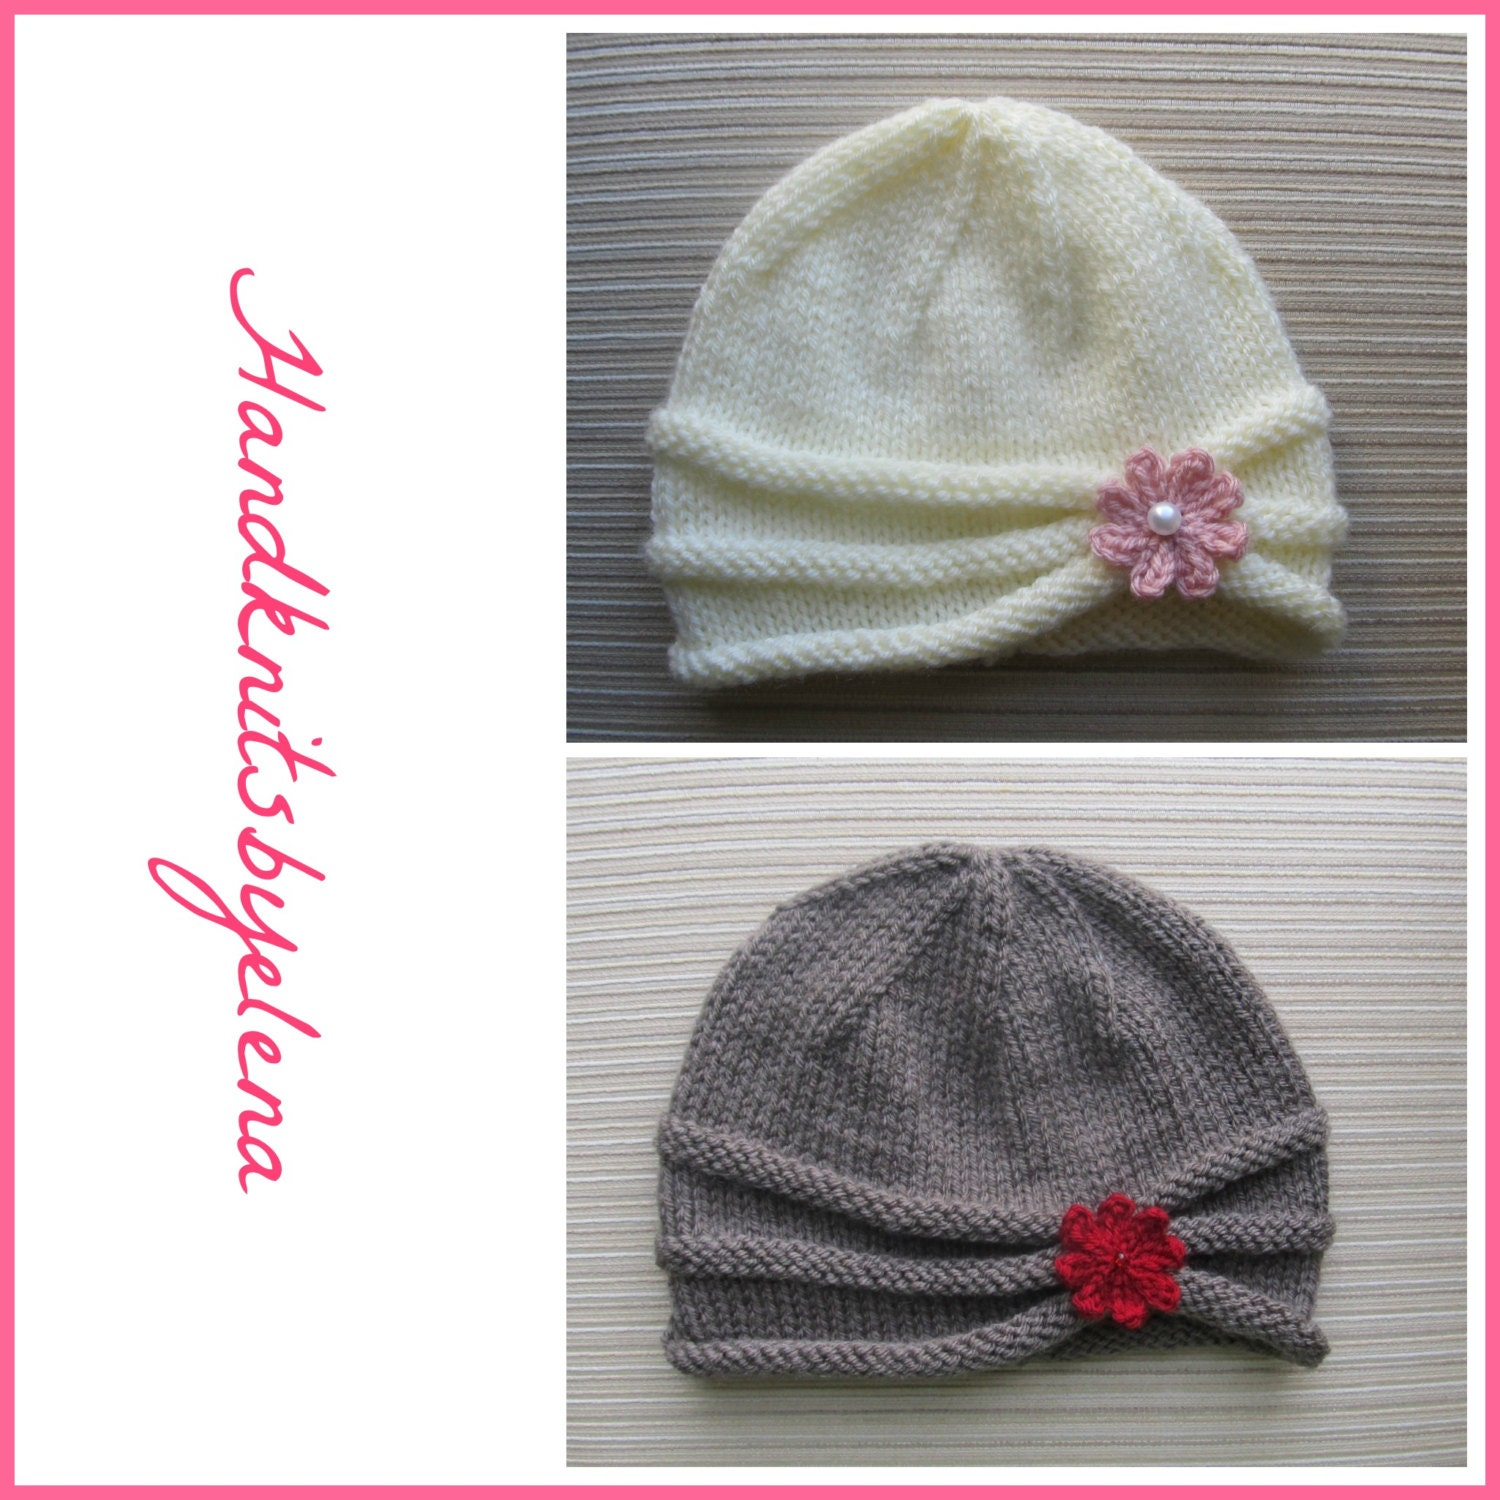 Knitting Pattern 161 Rolled Brim Hat With A Flower In Three